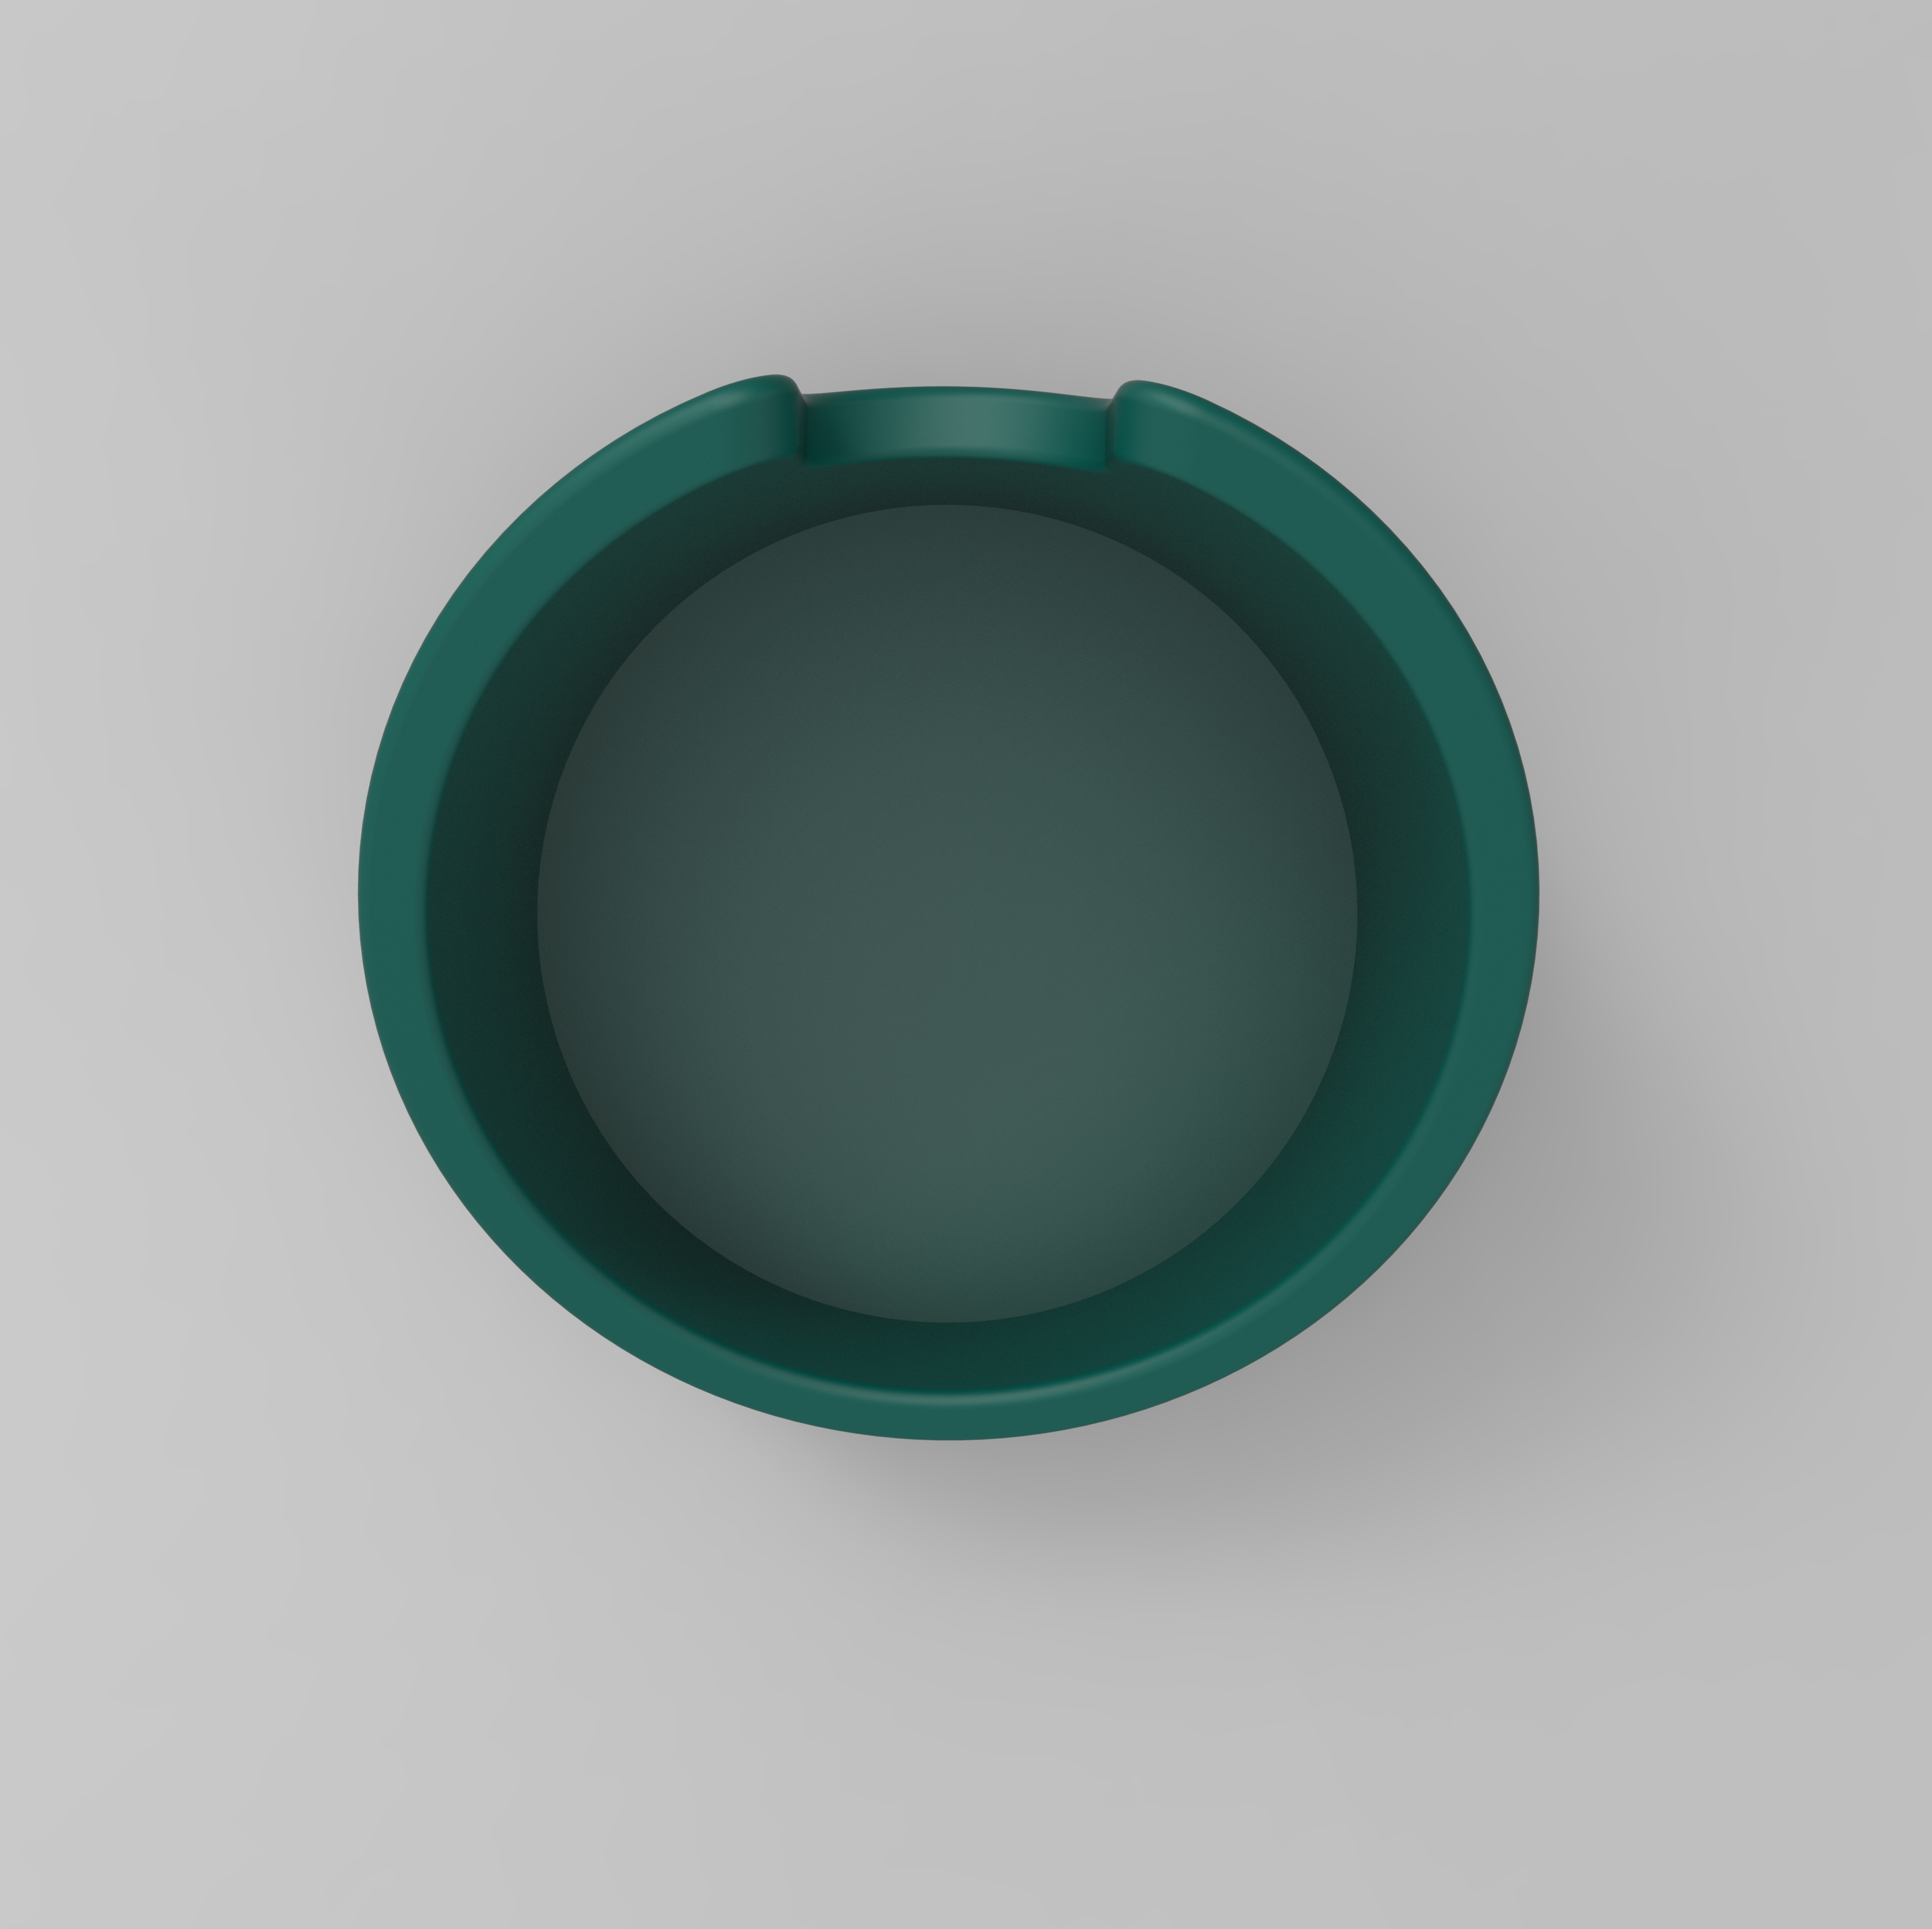 fe.png Download free STL file SUPPORT & SPOON REST • Model to 3D print, GuilhemPerroud